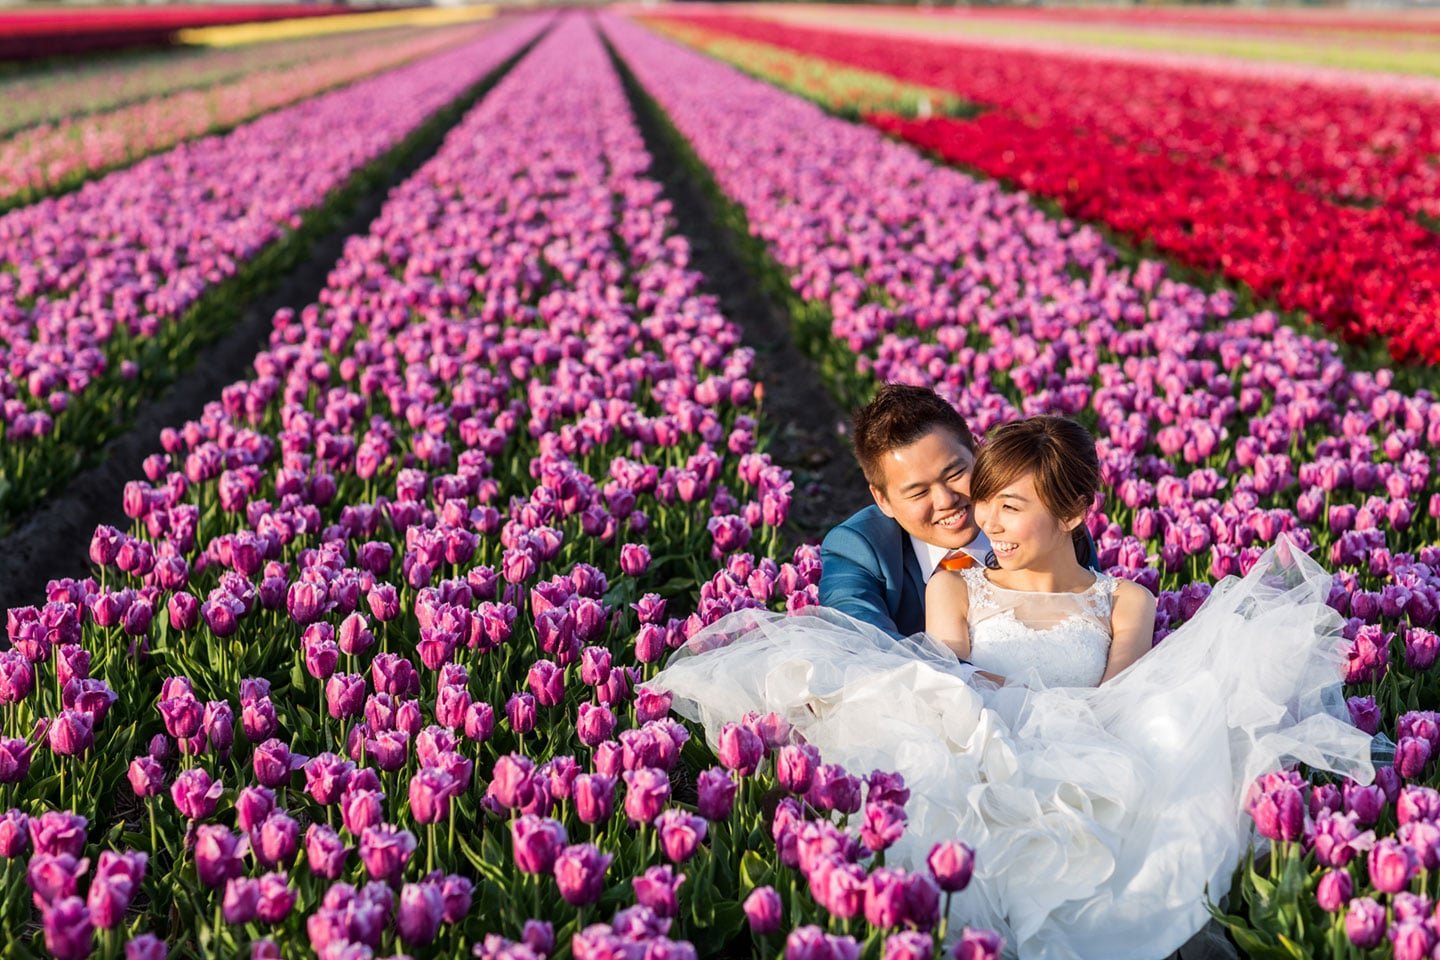 Getting married in the Netherlands - Dutch wedding